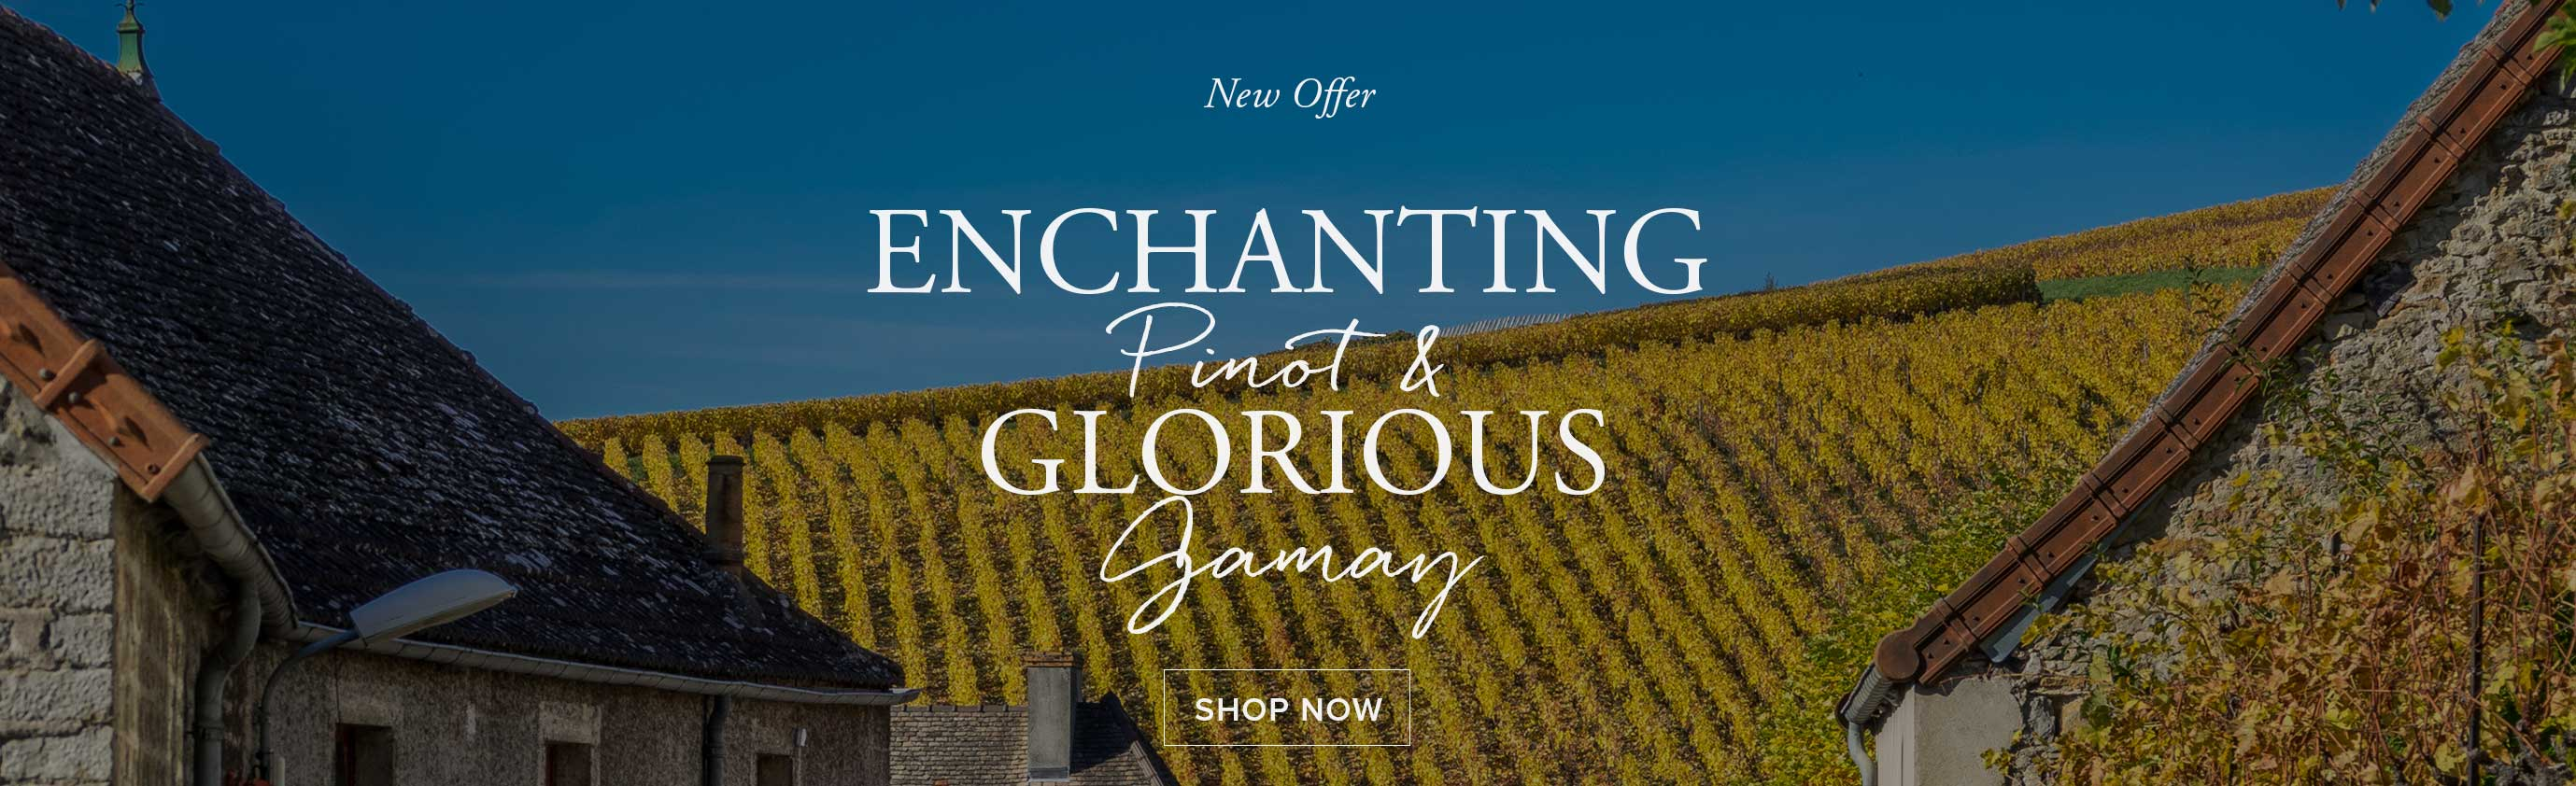 New Offer - Enchanting Pinot Noir and Glorious Gamay